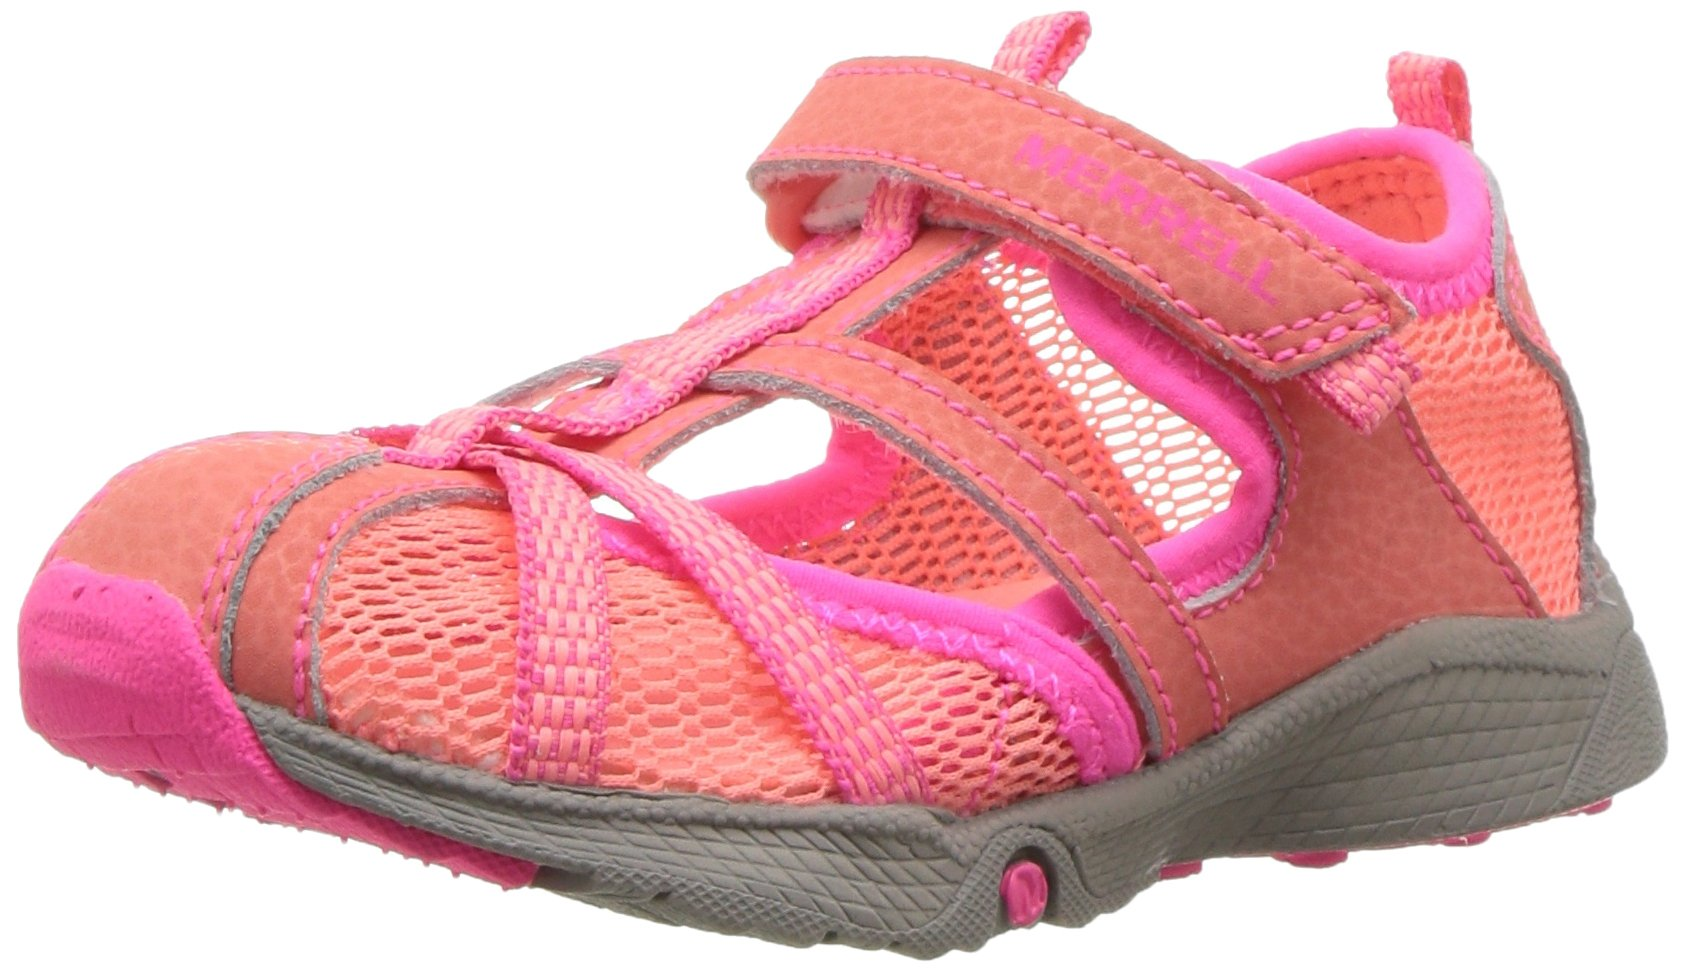 Merrell Hydro Monarch Water Sandal (Toddler/Little Kid/Big Kid), Coral, 5 M US Toddler